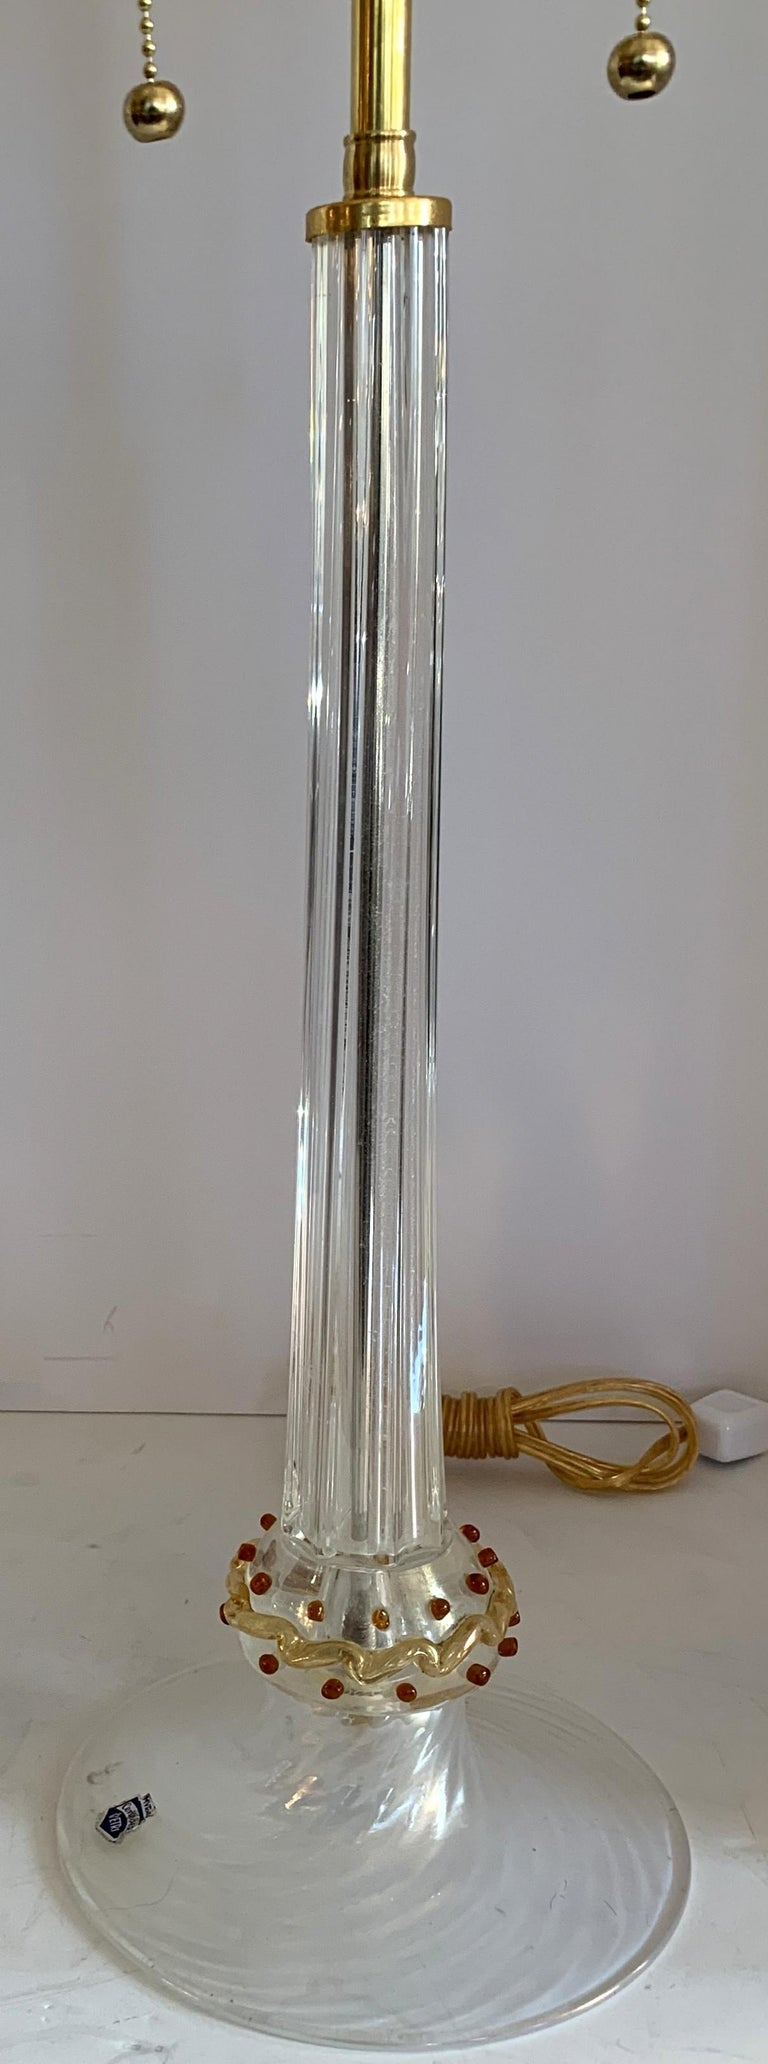 Rare Mid-Century Modern Italian Murano Venetian Iridescent Lamps Cenedese, Pair In Good Condition For Sale In Roslyn, NY